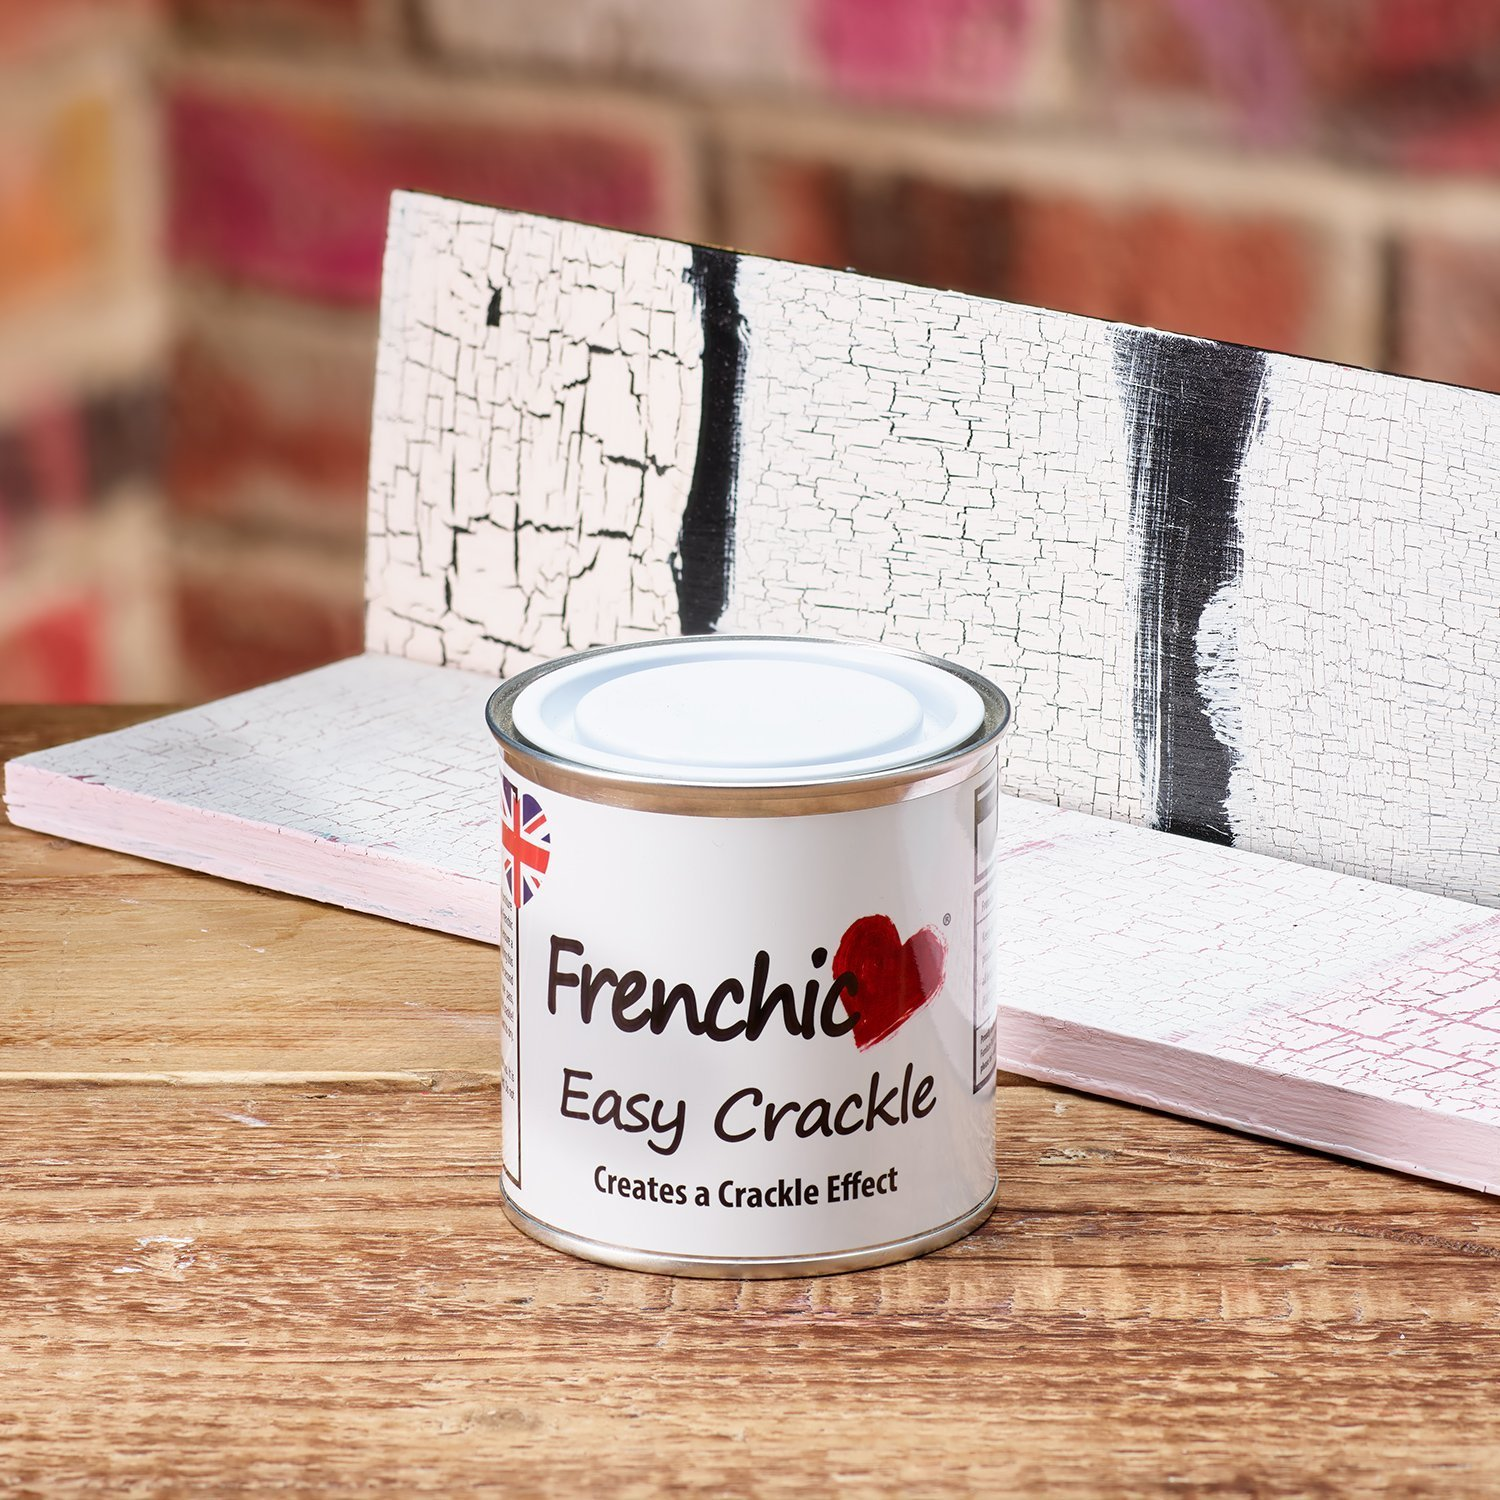 Frenchic Waxes & Crackle